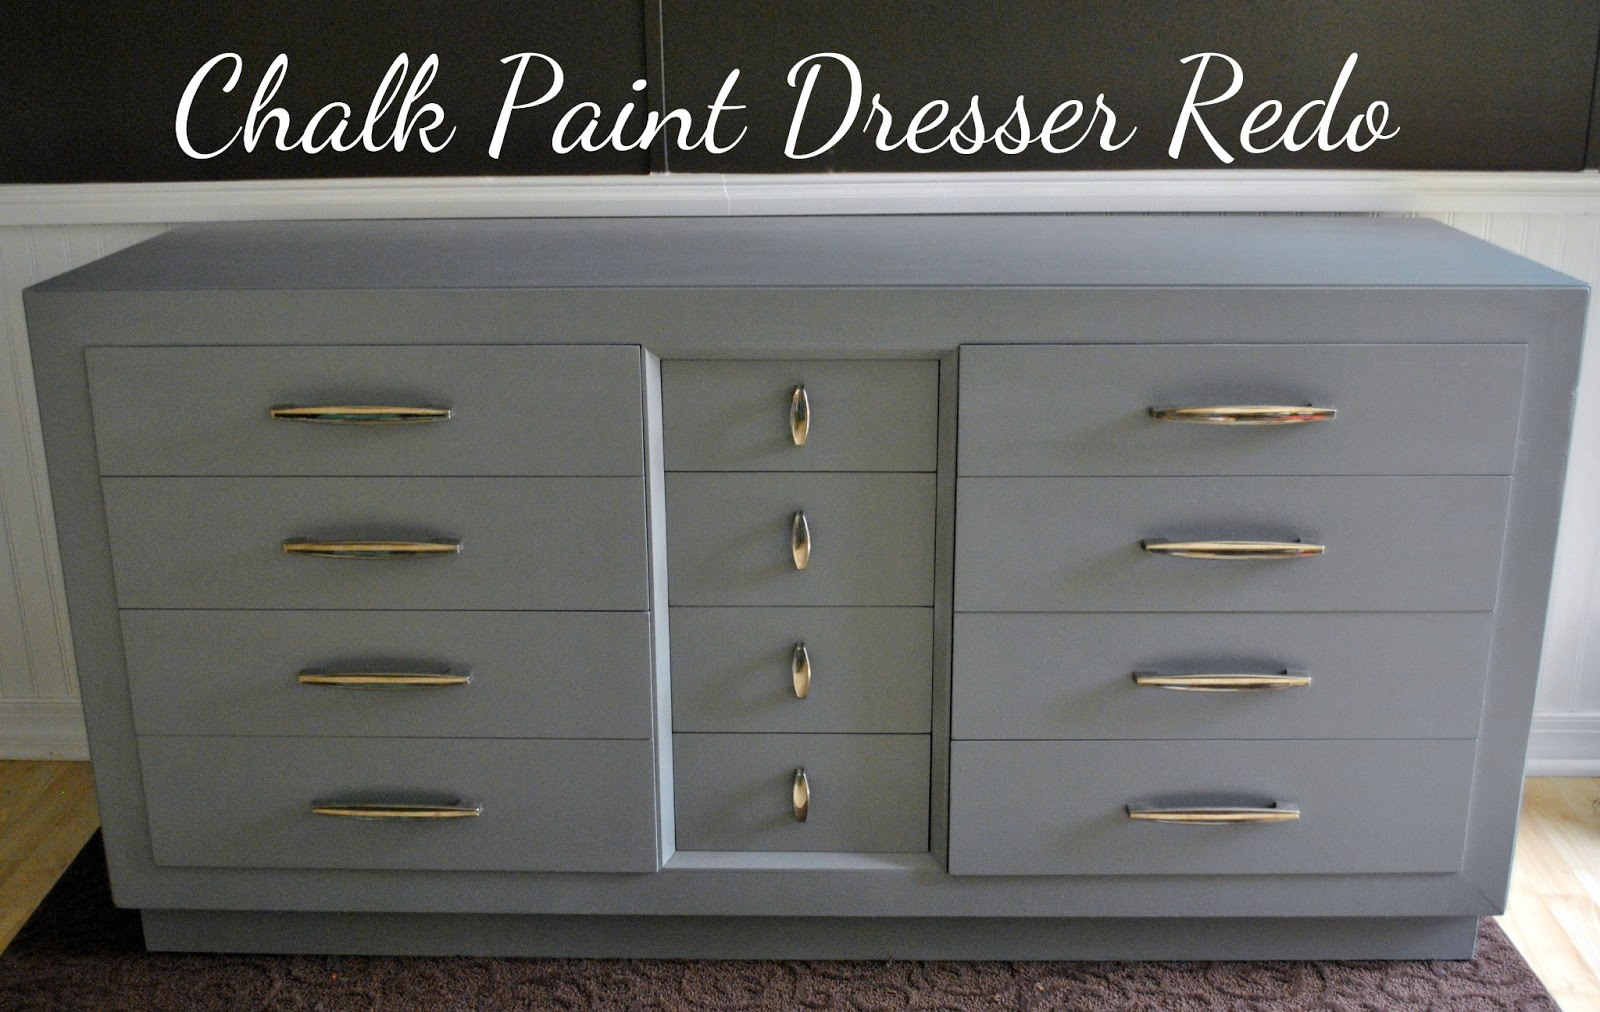 Amazing DIY Chalk Paint Dresser Redo